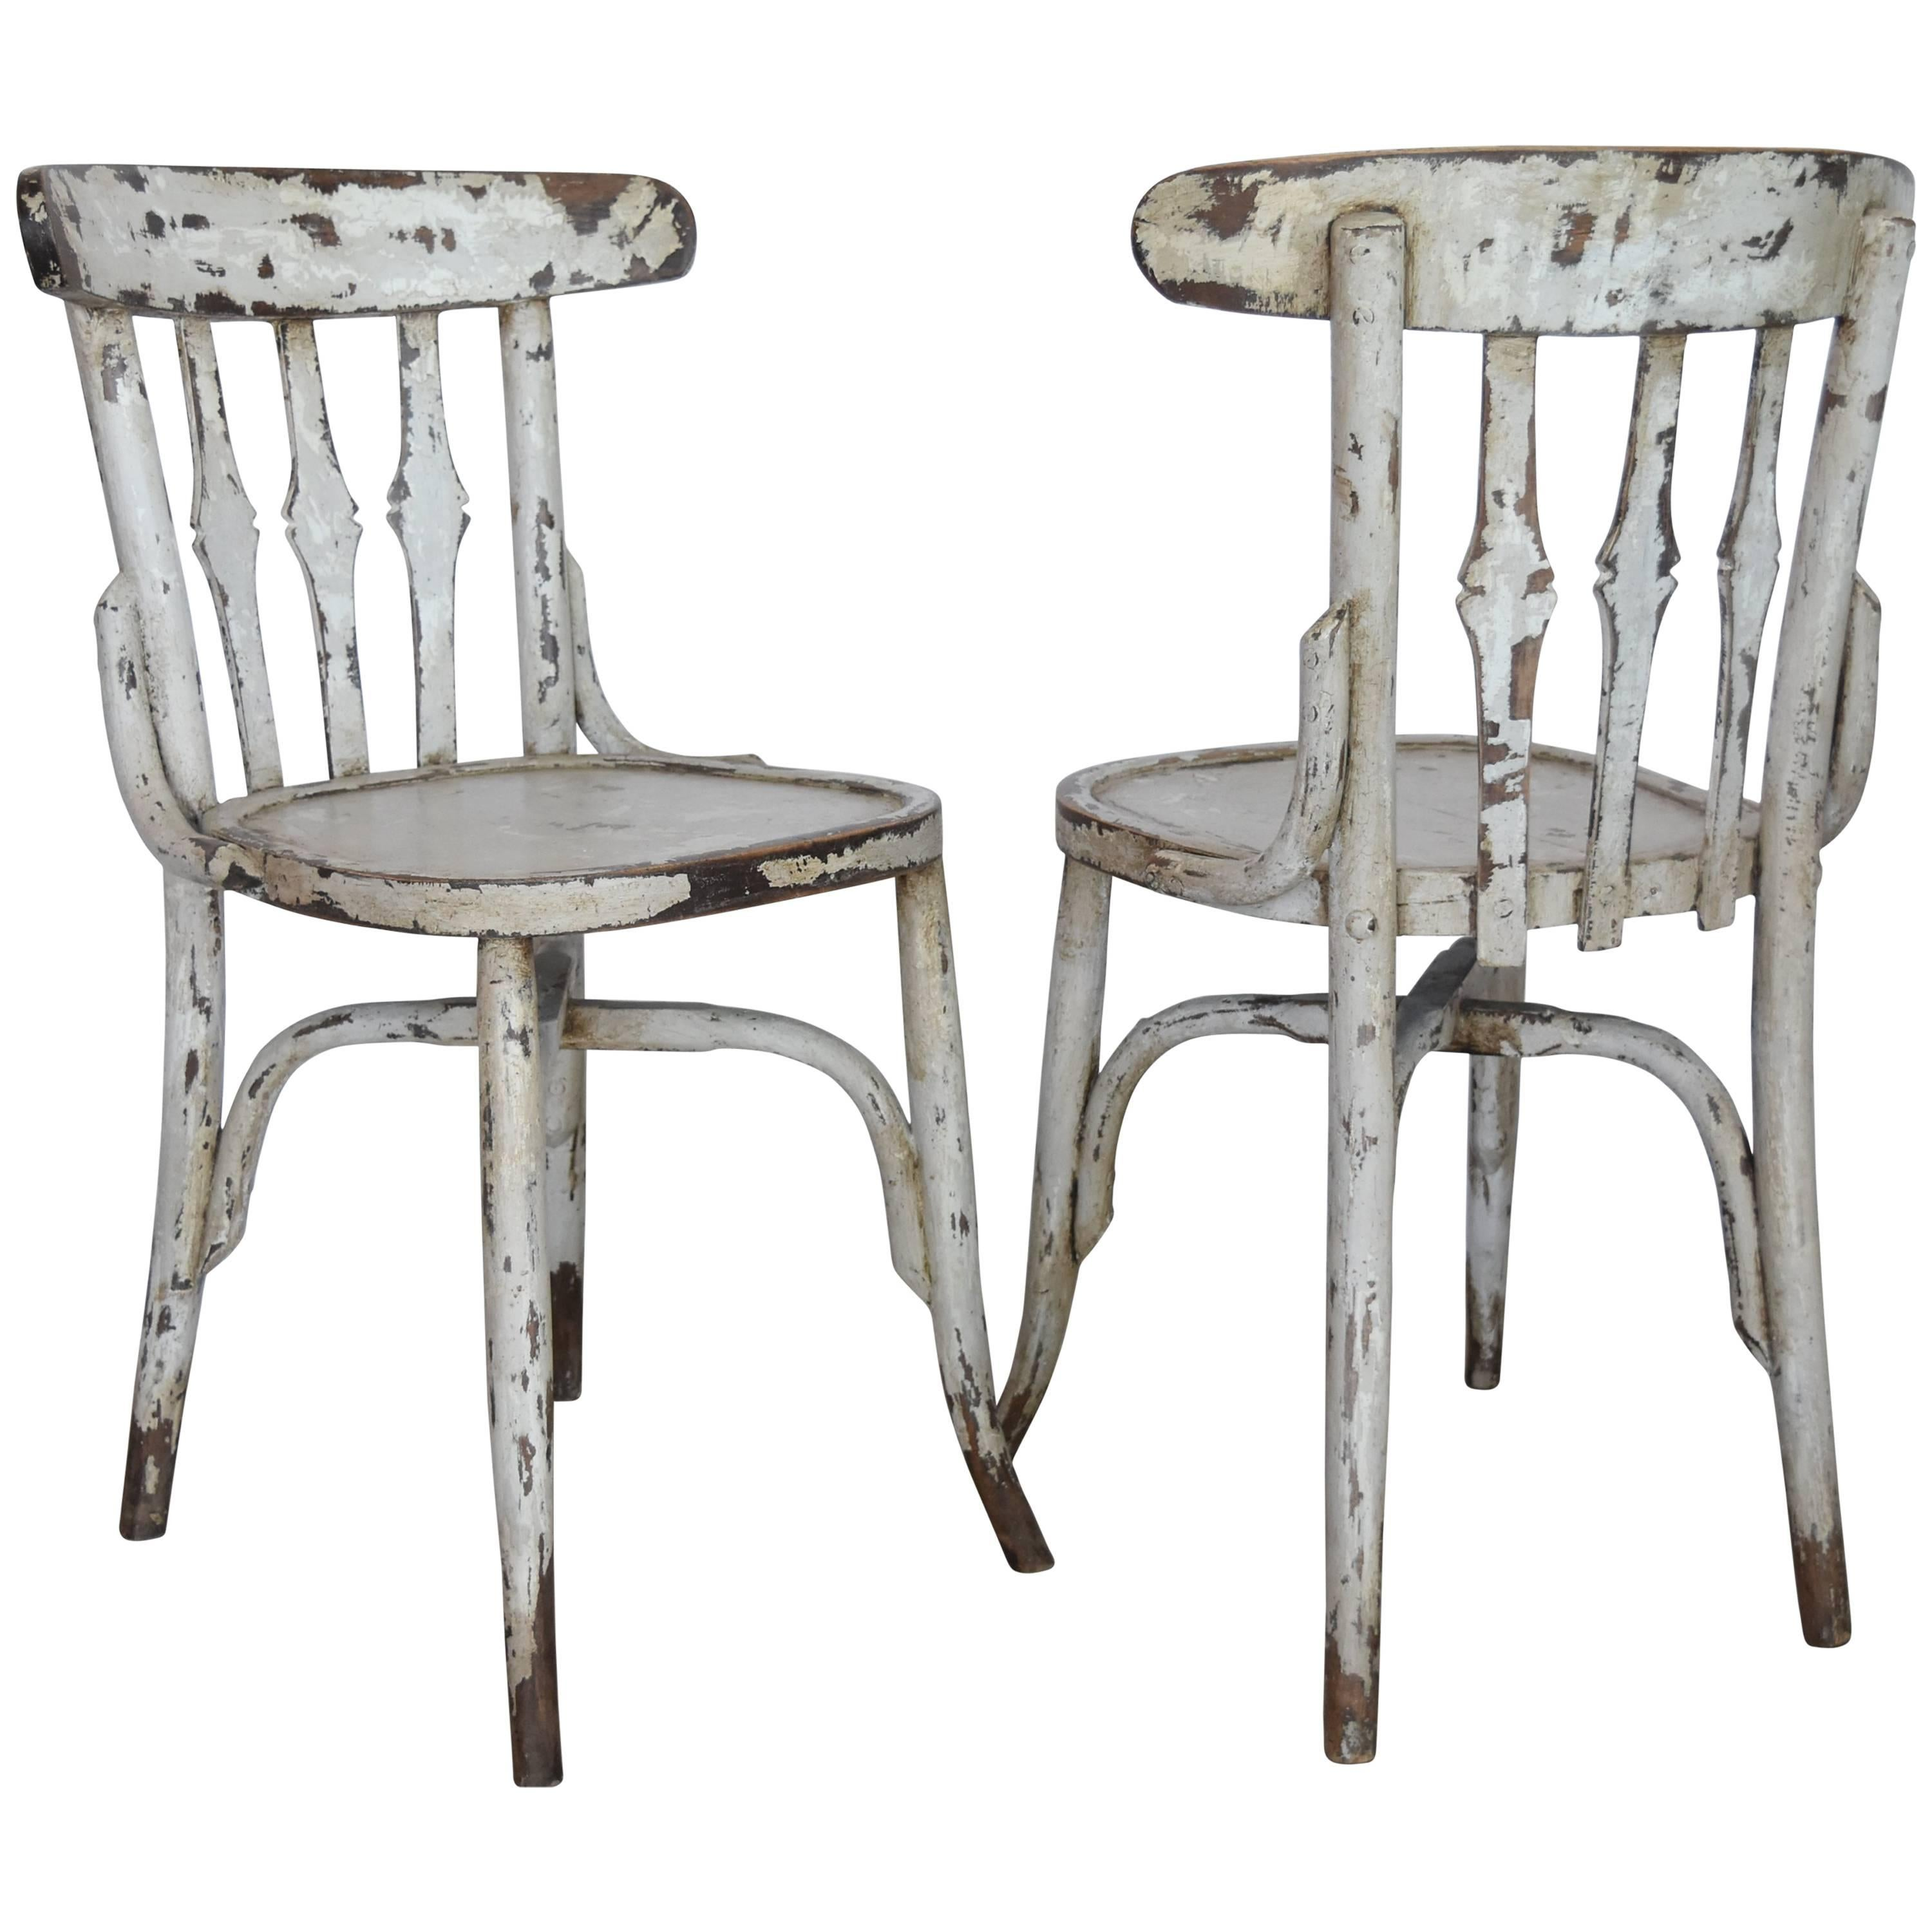 cafe chairs wooden massage chair while pregnant 1950s spanish bistro with light gray paint for sale